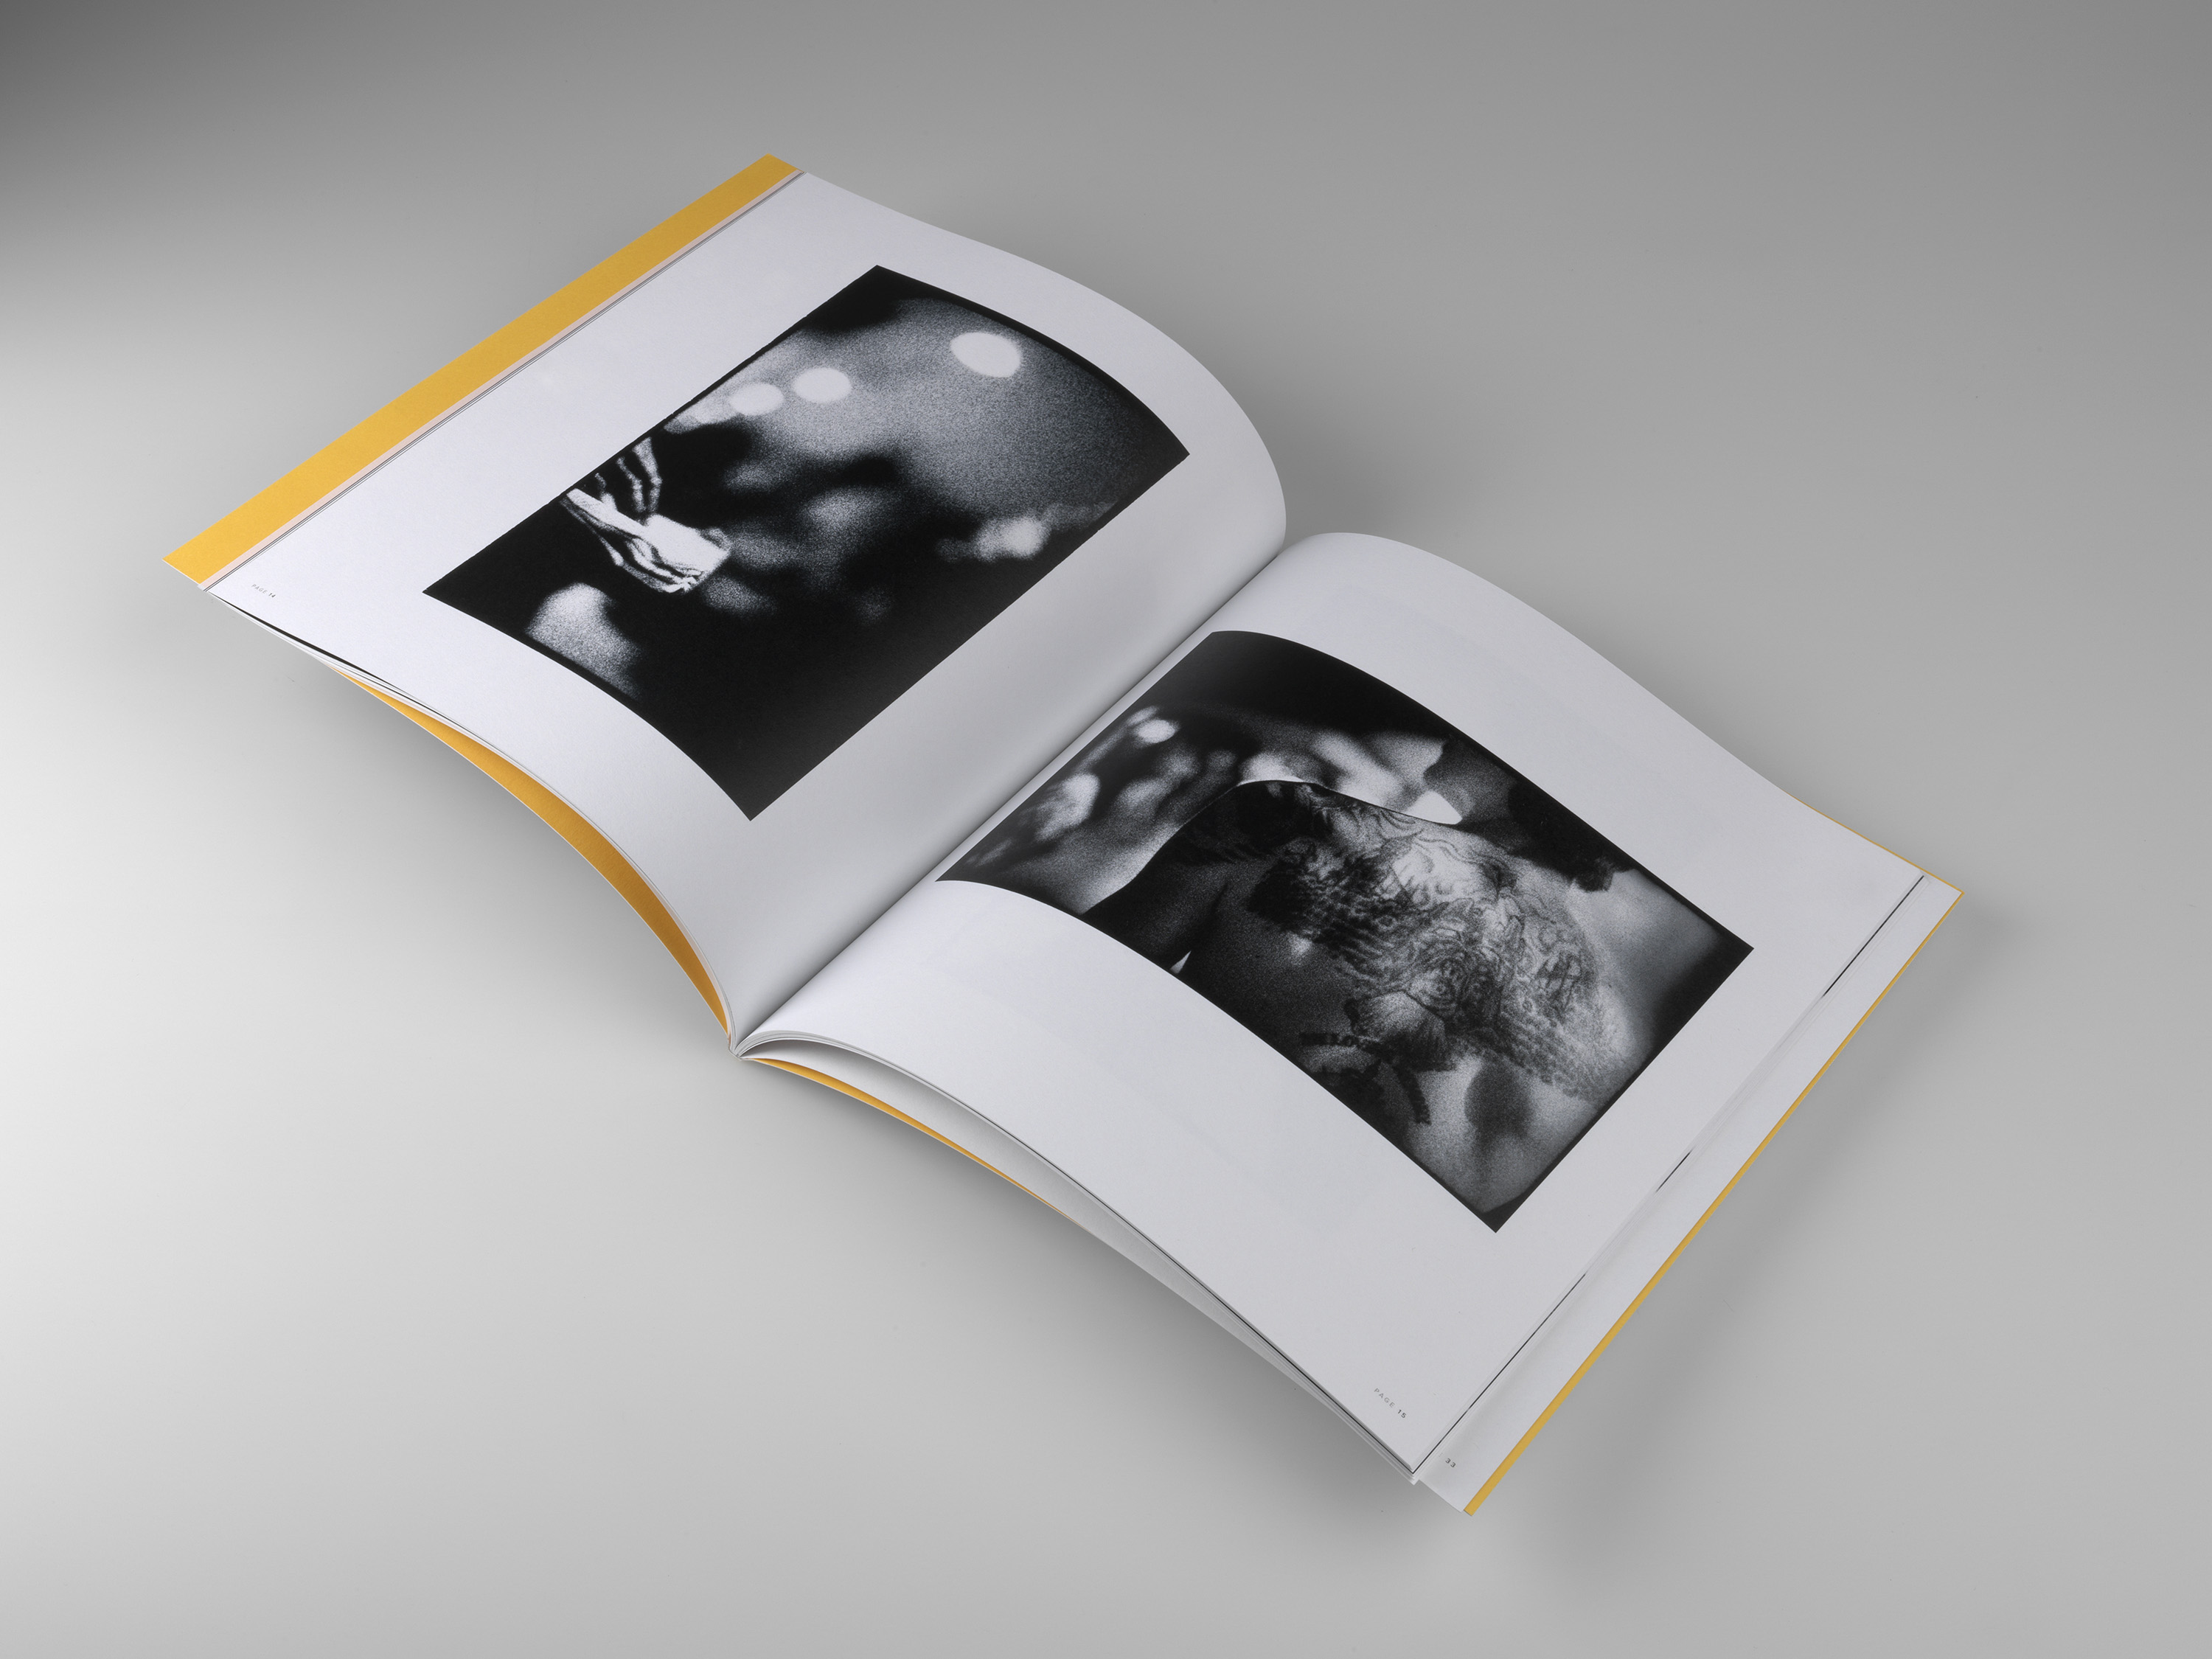 Saman Genshin's First Photo Book